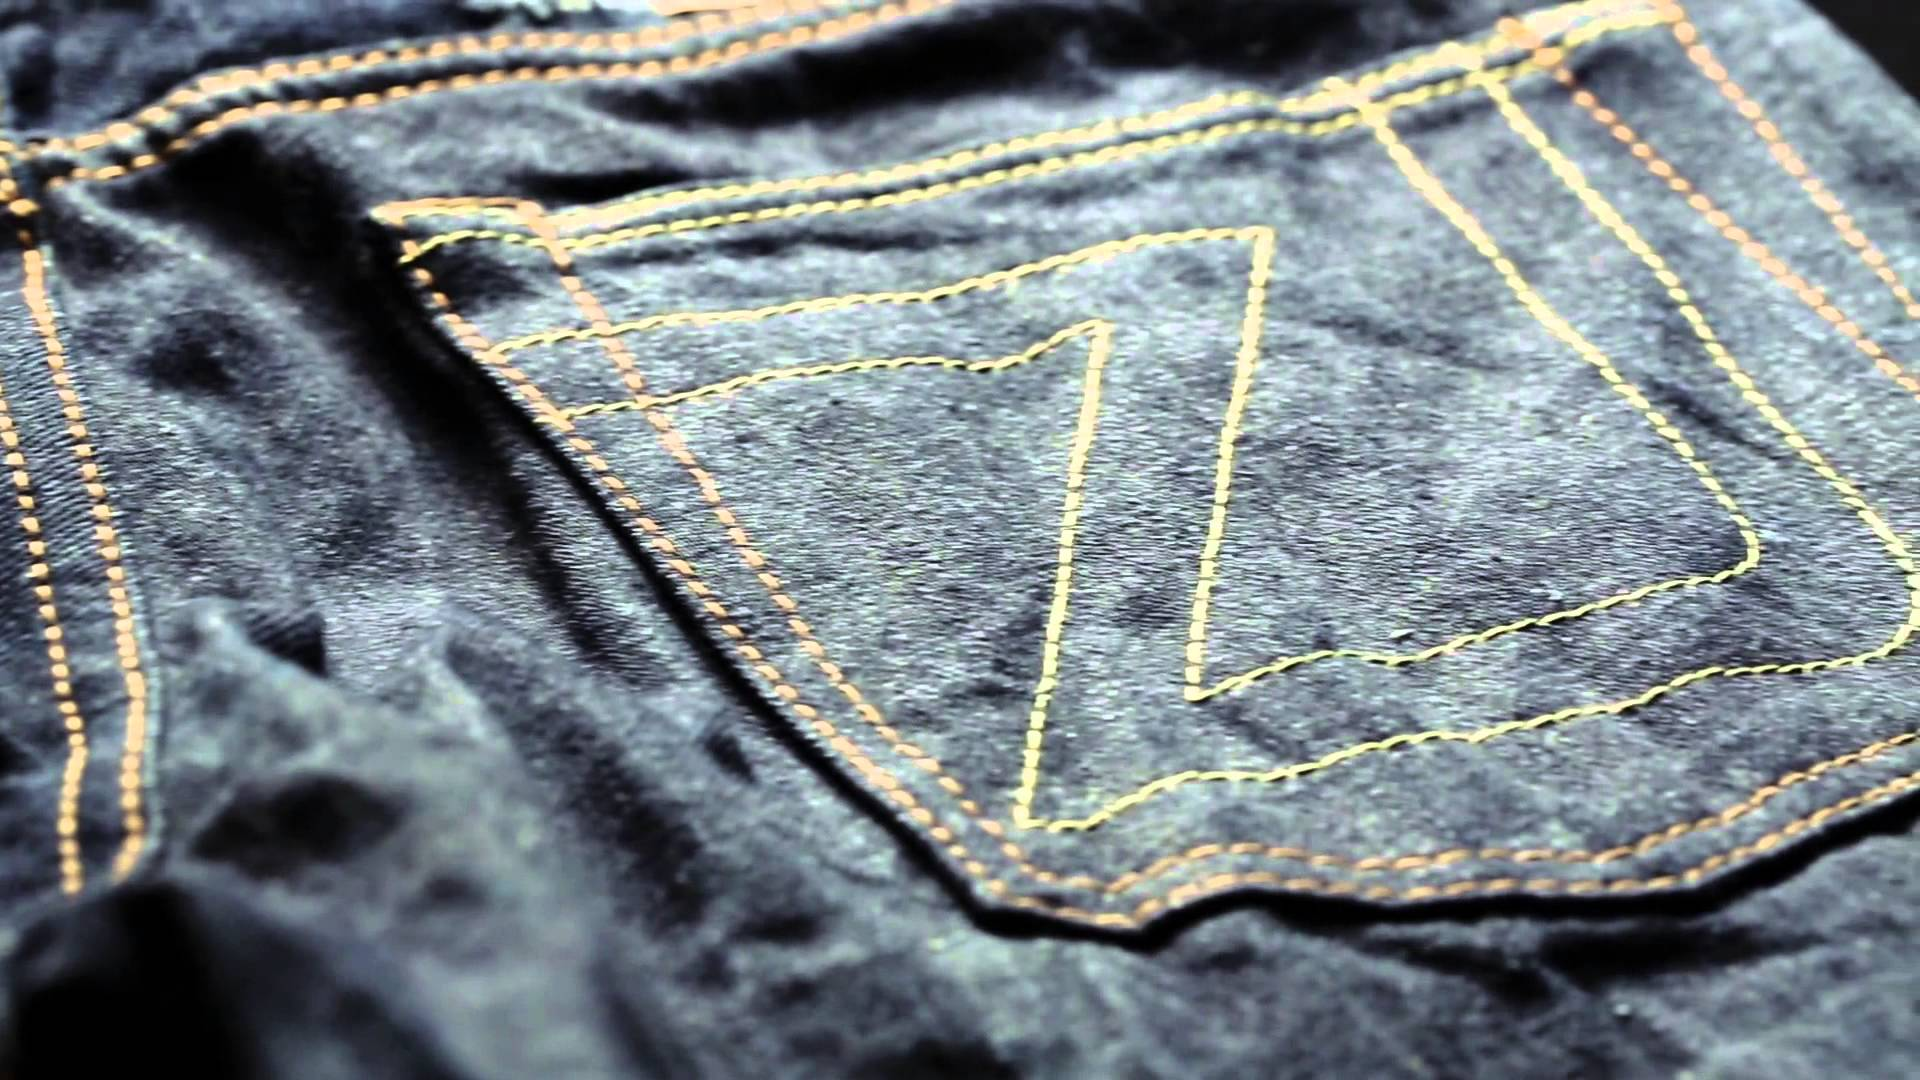 maxresdefaultBIBZVX27 Zoo Jeans: Jeans designed by Tigers, Lions, and Bears